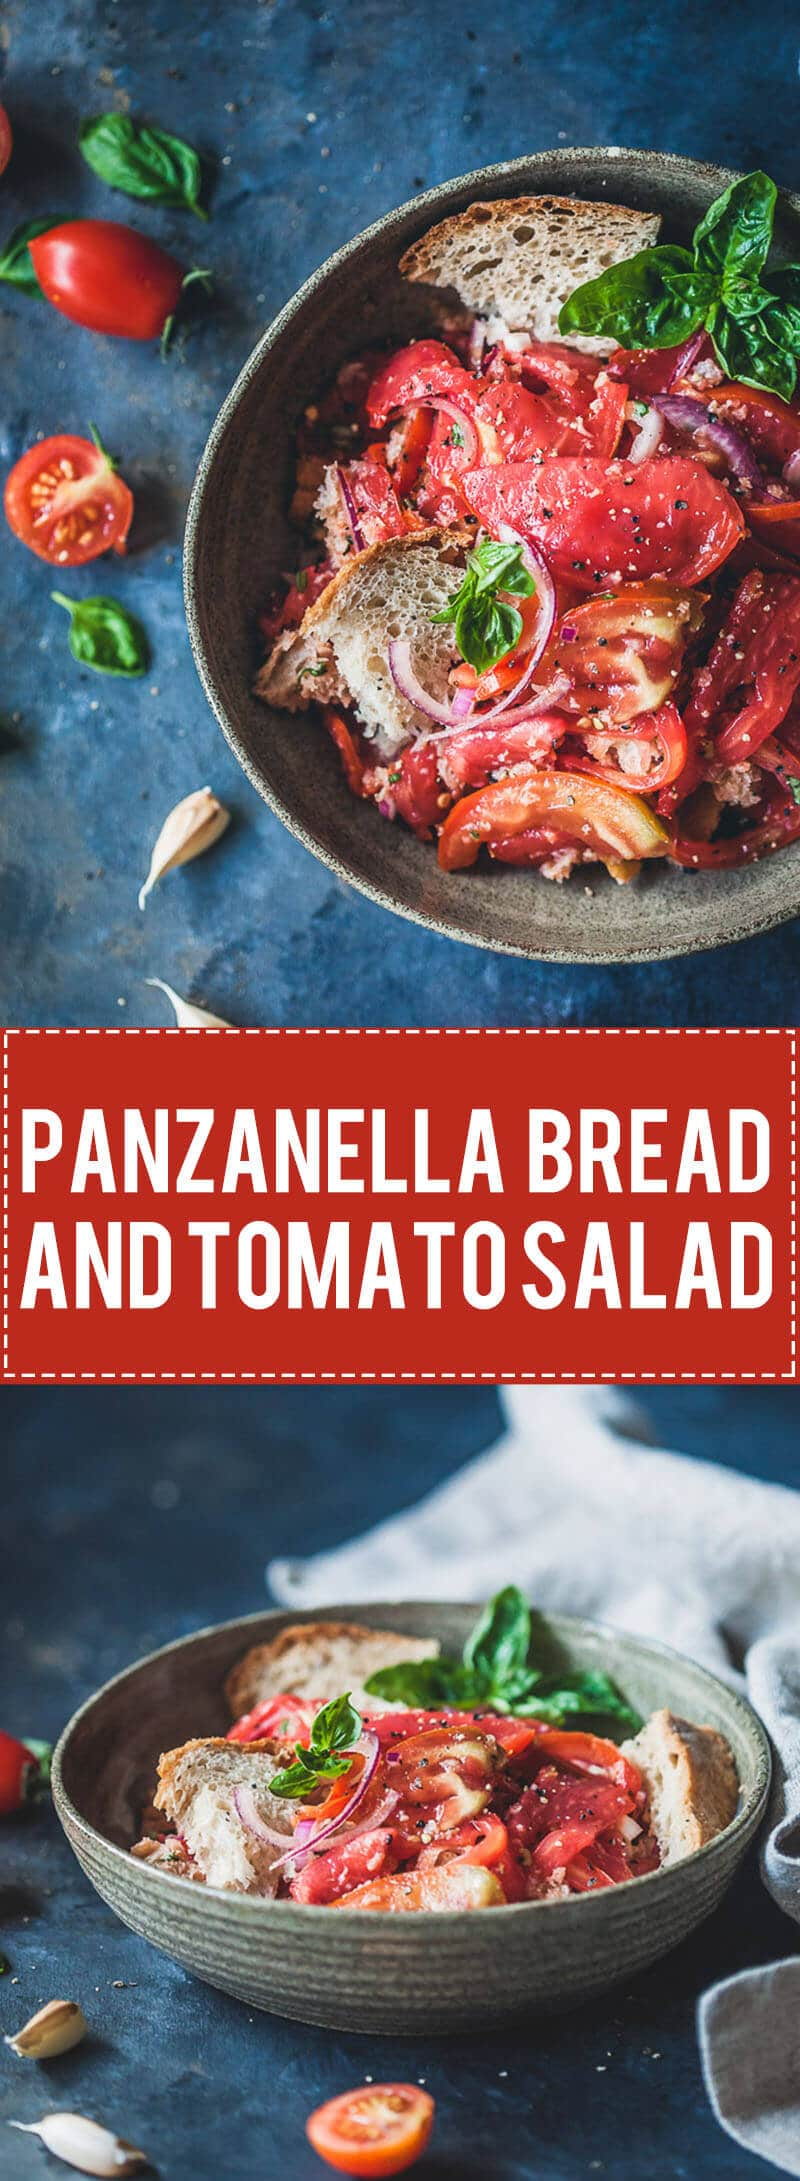 A delicious Bread and Tomato Salad, Panzanella is a great dish to use up stale bread and ripe tomatoes.